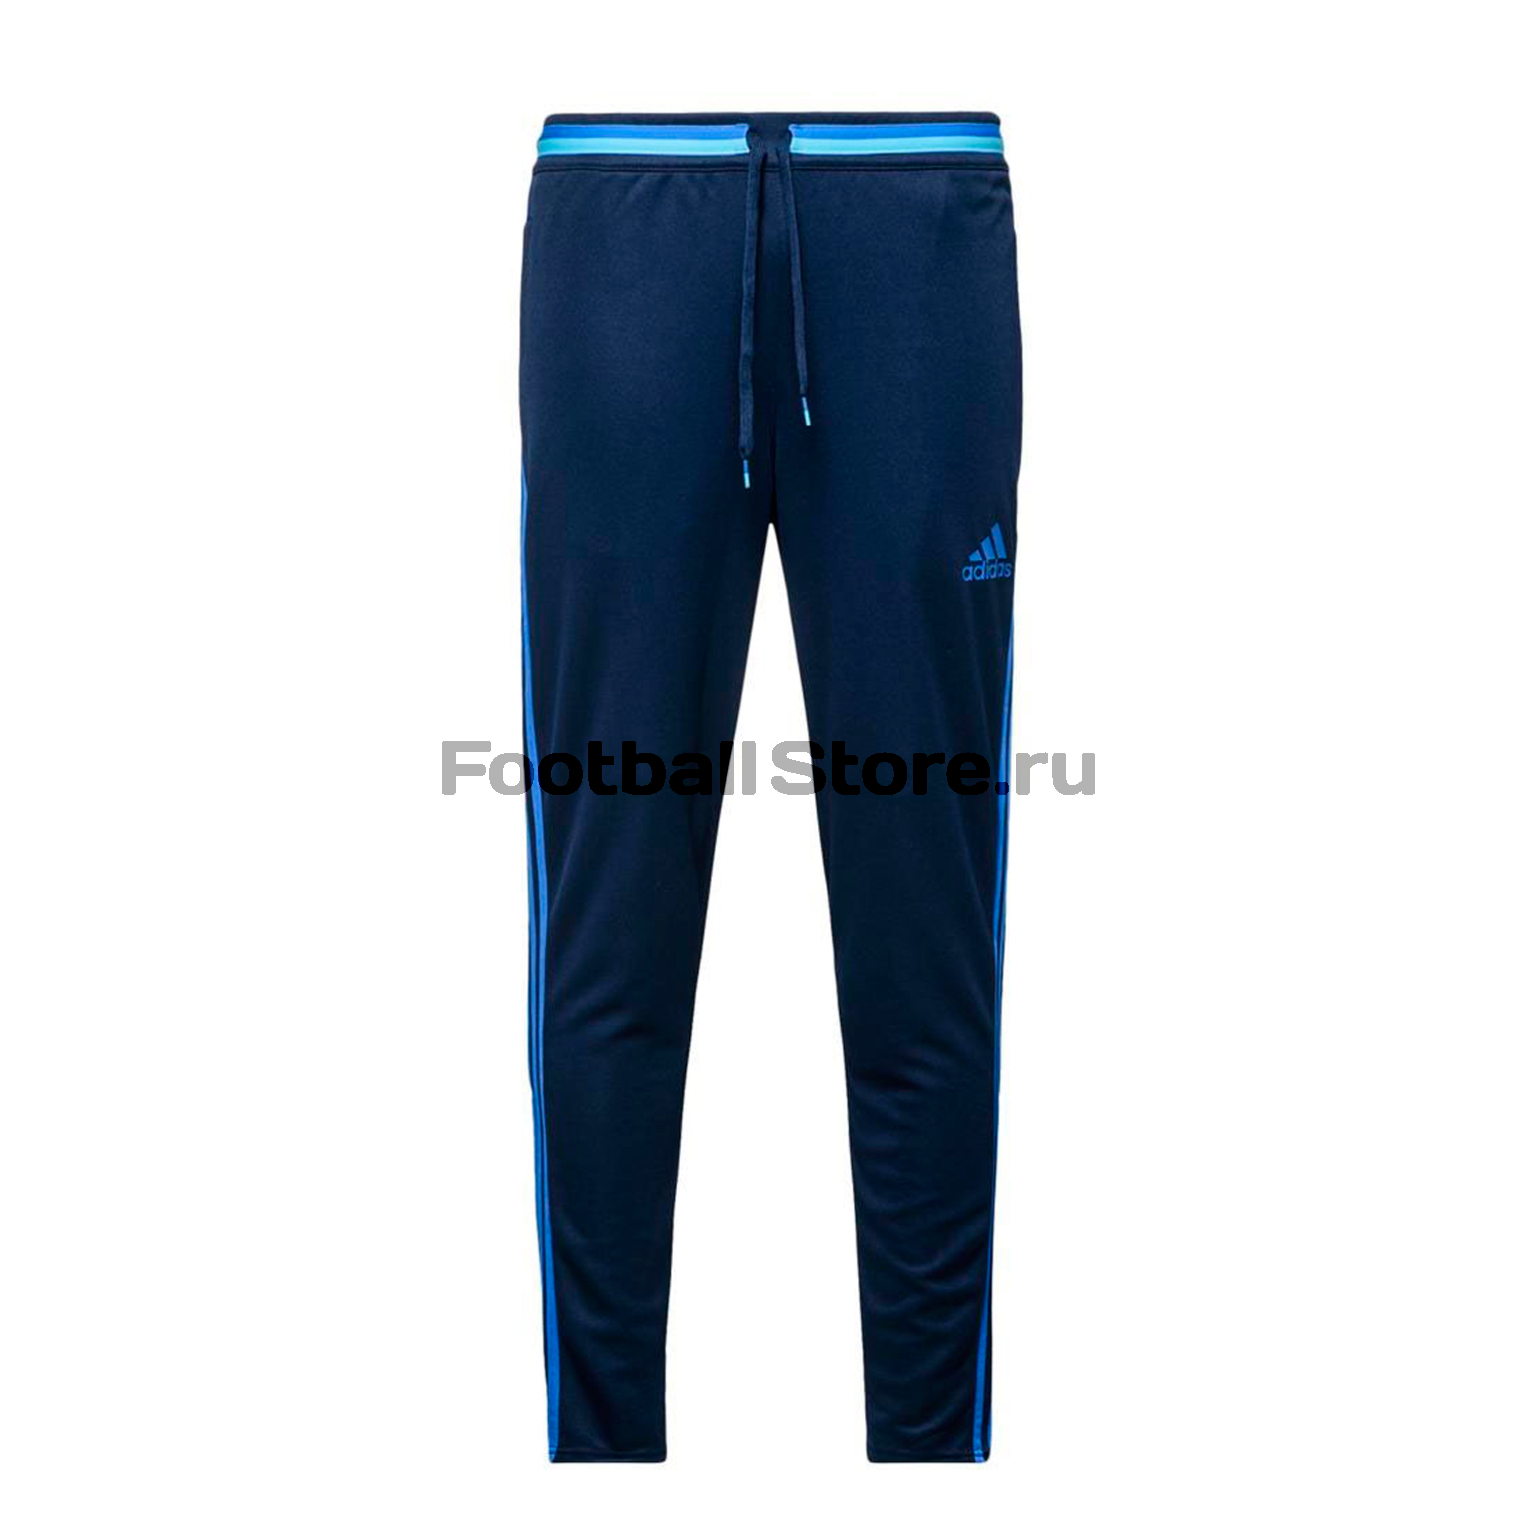 Брюки Adidas Con16 TRG PNT AB3131 сарафаны trg new ideas for life сарафан